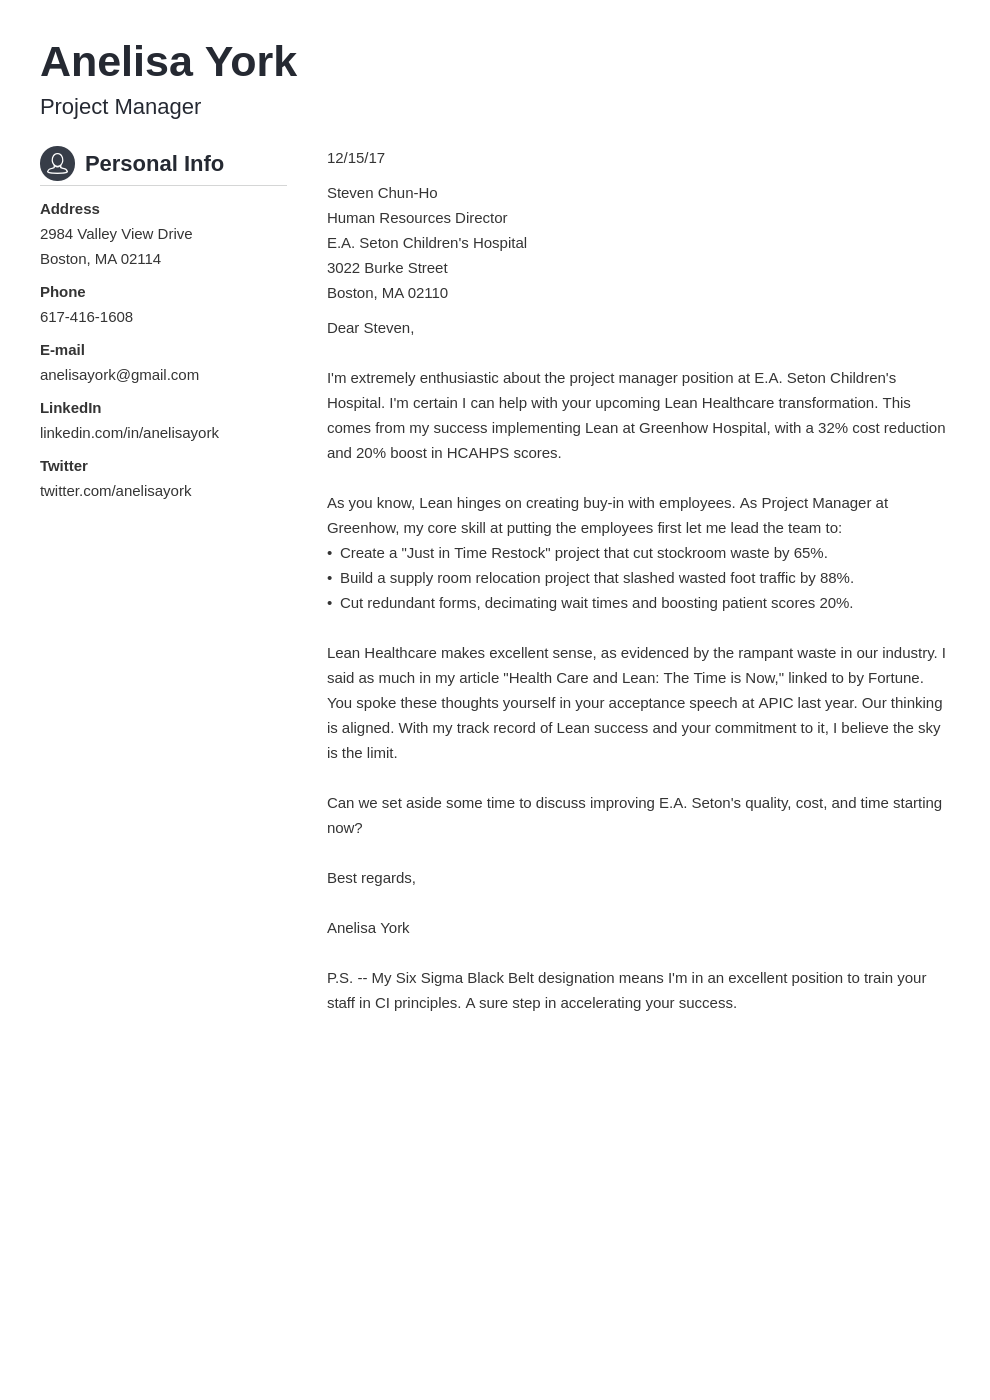 How Long Should A Cover Letter Be Ideal Word Length Page Count